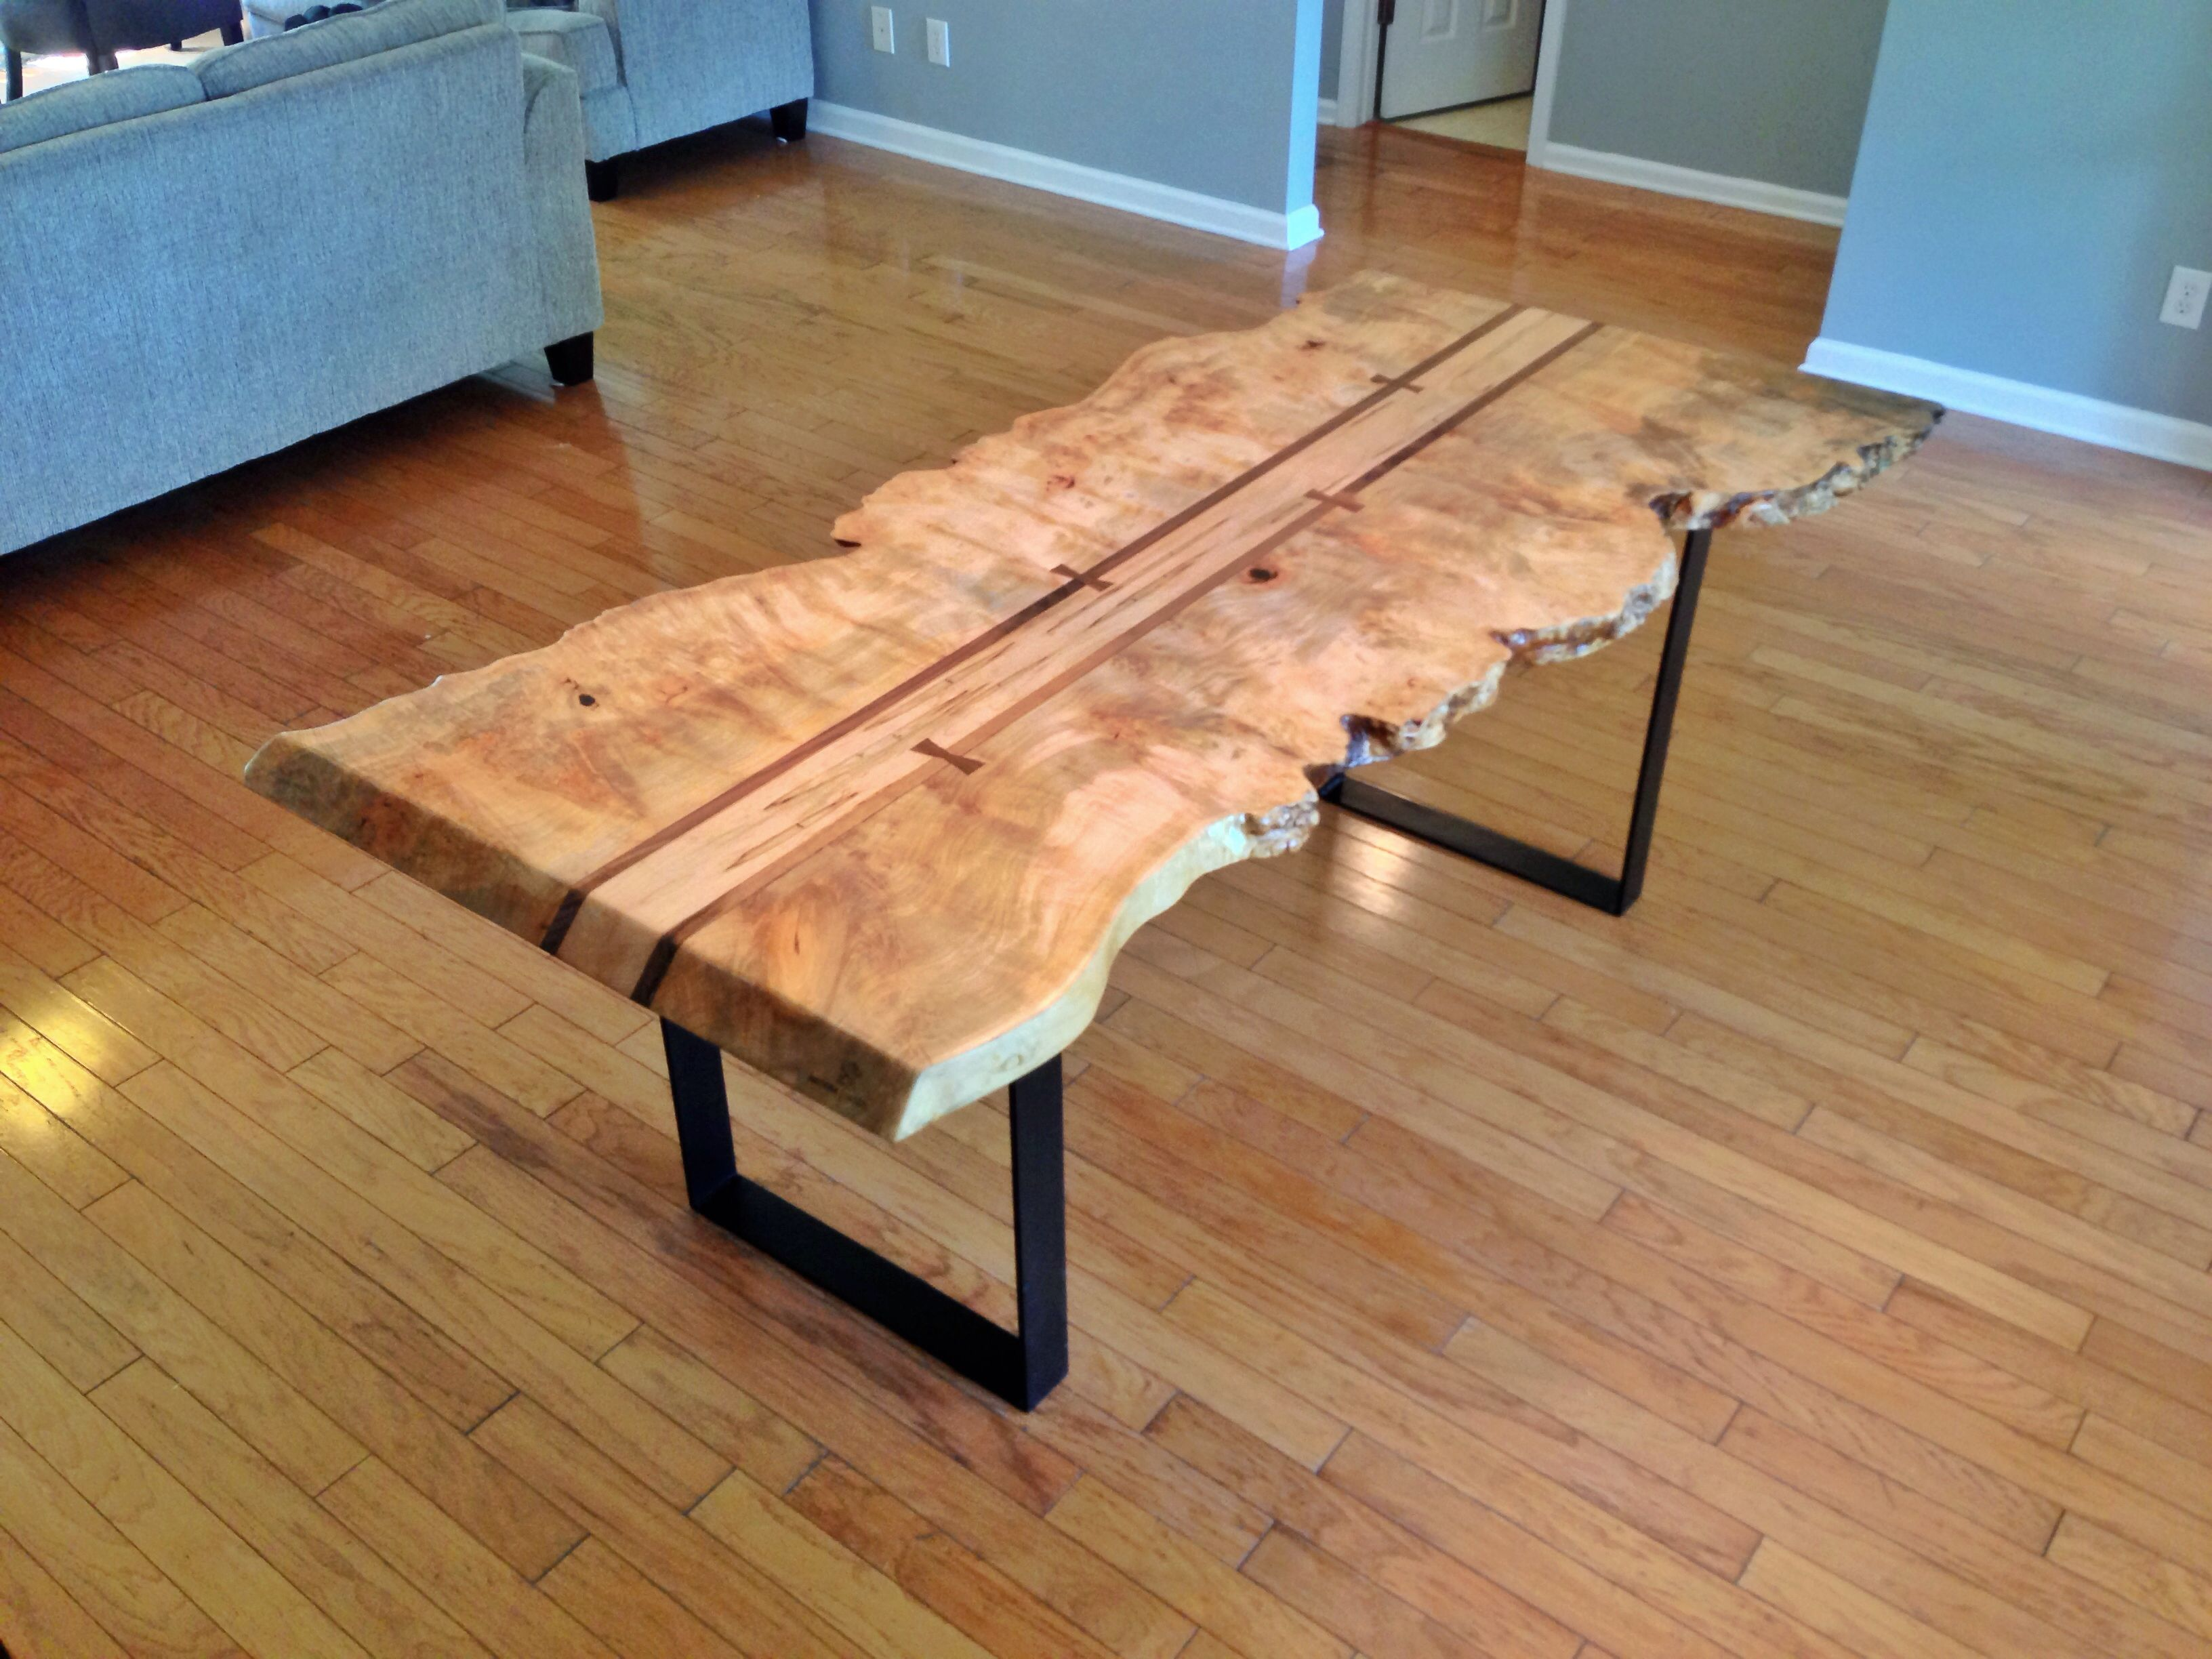 Walnut live edge dining table - Maple Burl Live Edge Dining Table With Ambrosia Maple Center Flanked By Walnut With Hand